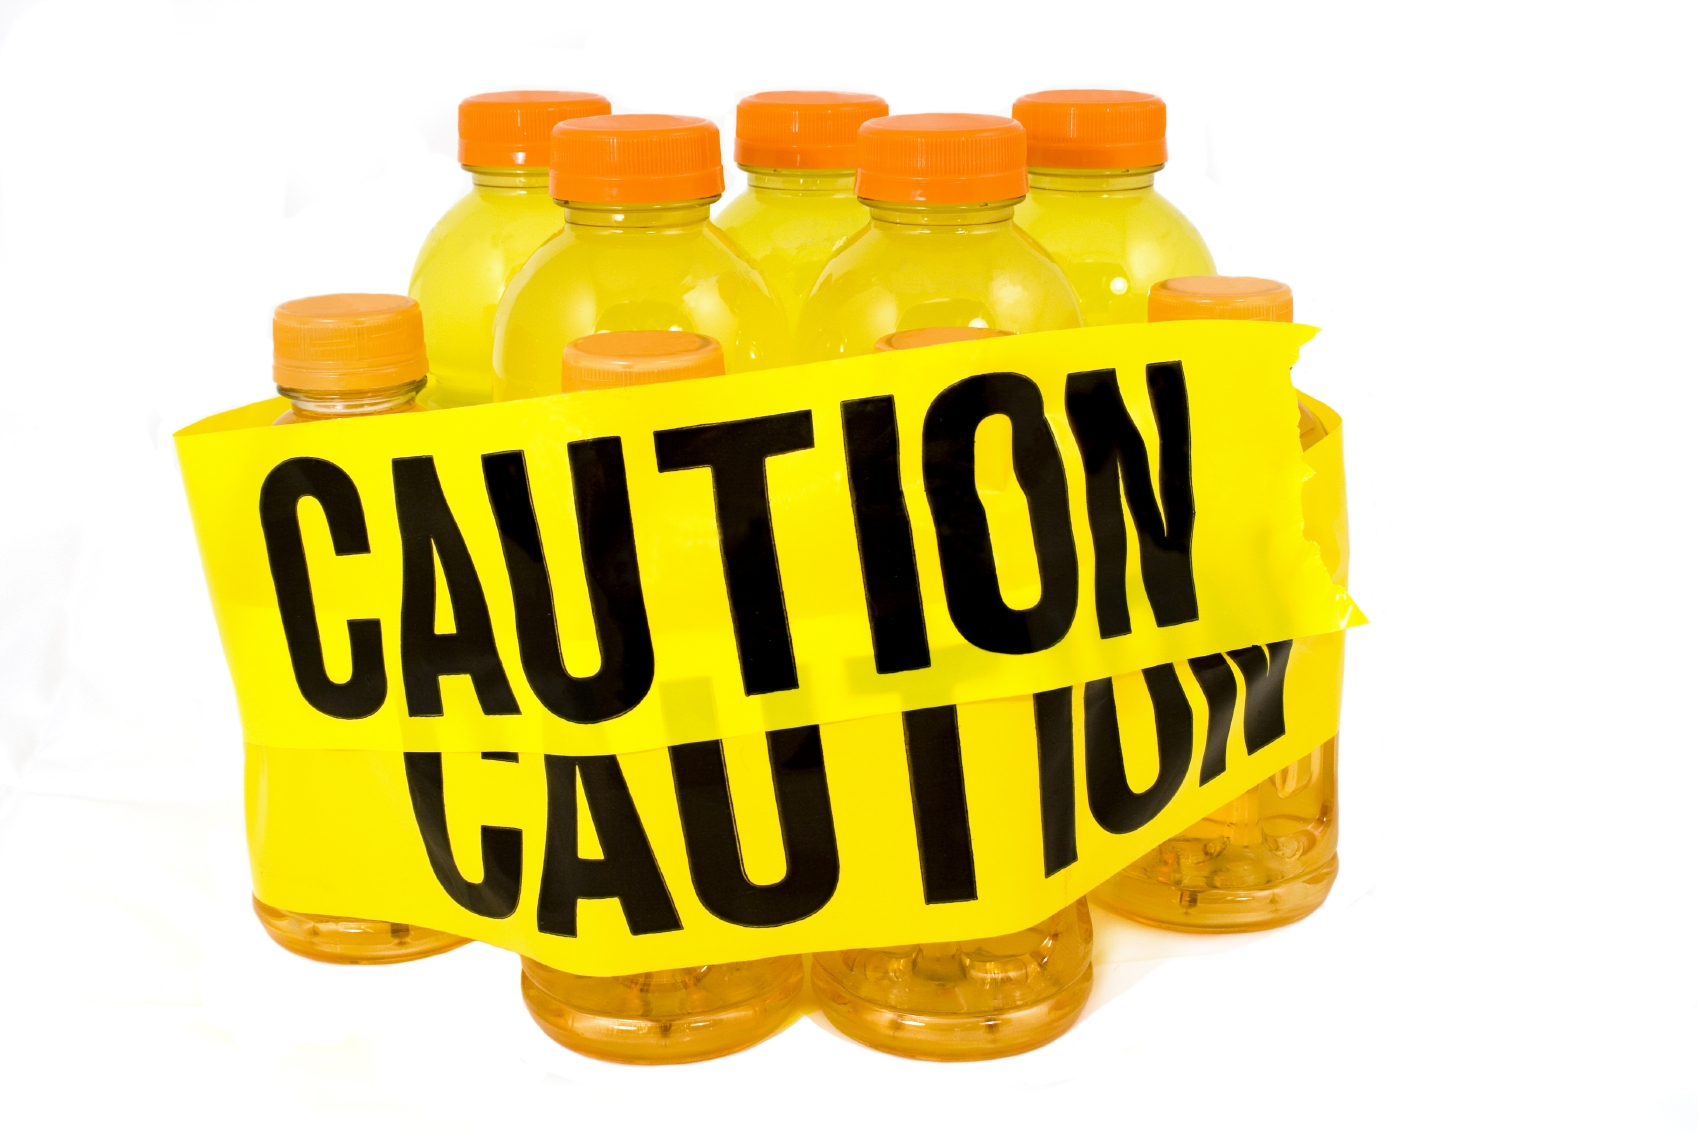 A bunch of drinks being wrapped with a Caution label